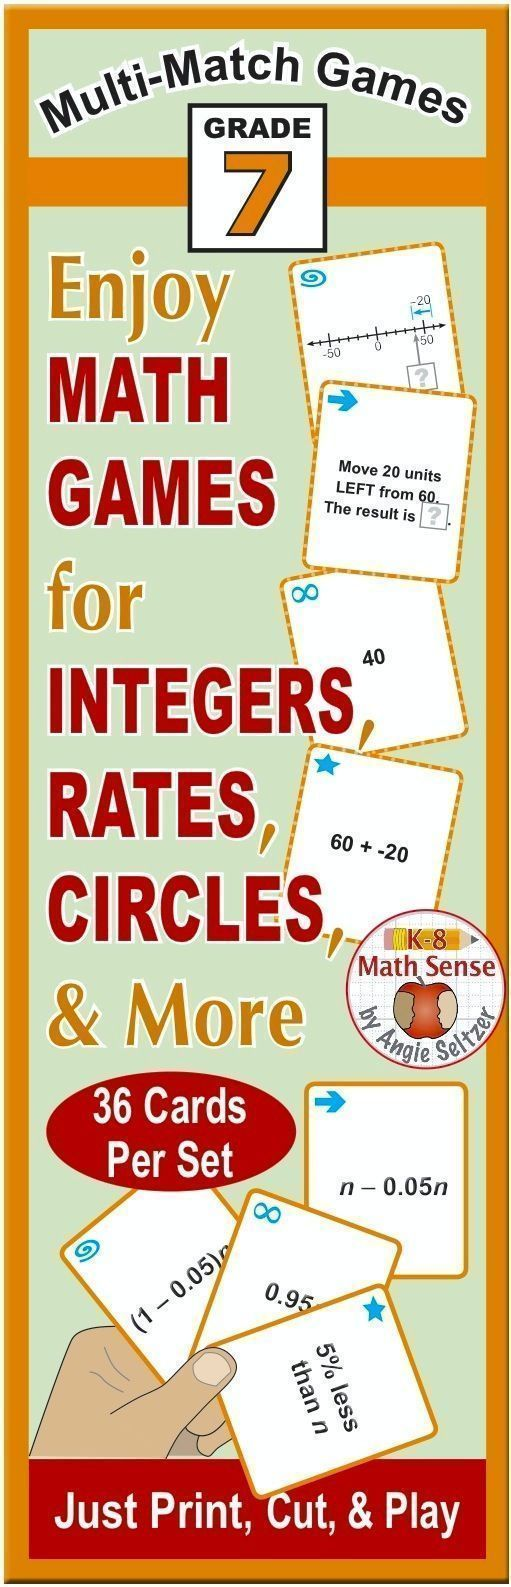 53 best Grade 7 Math Activities images on Pinterest | Math ...